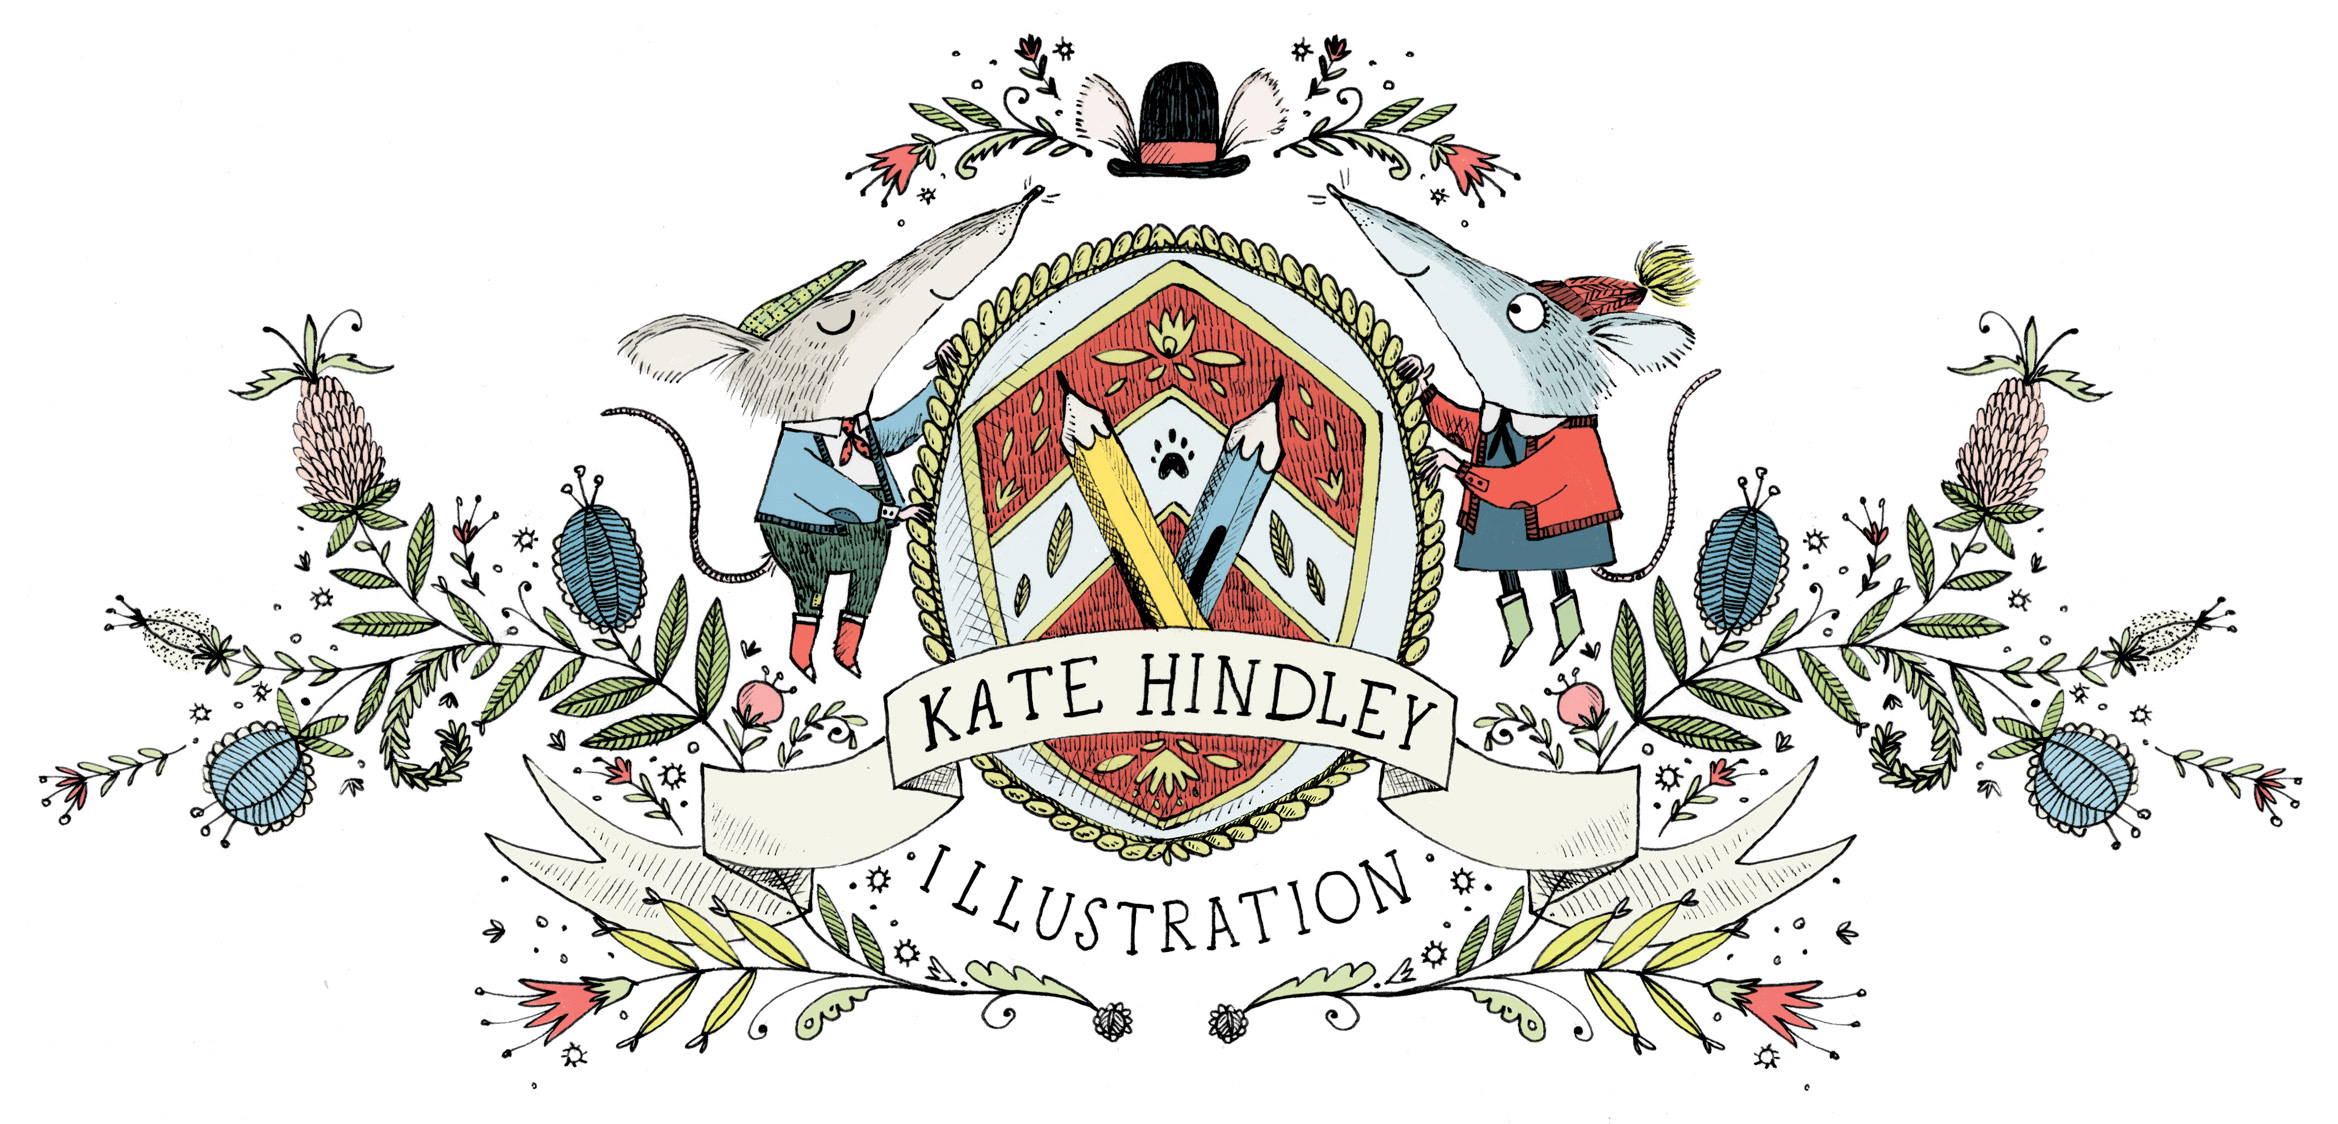 Kate Hindley